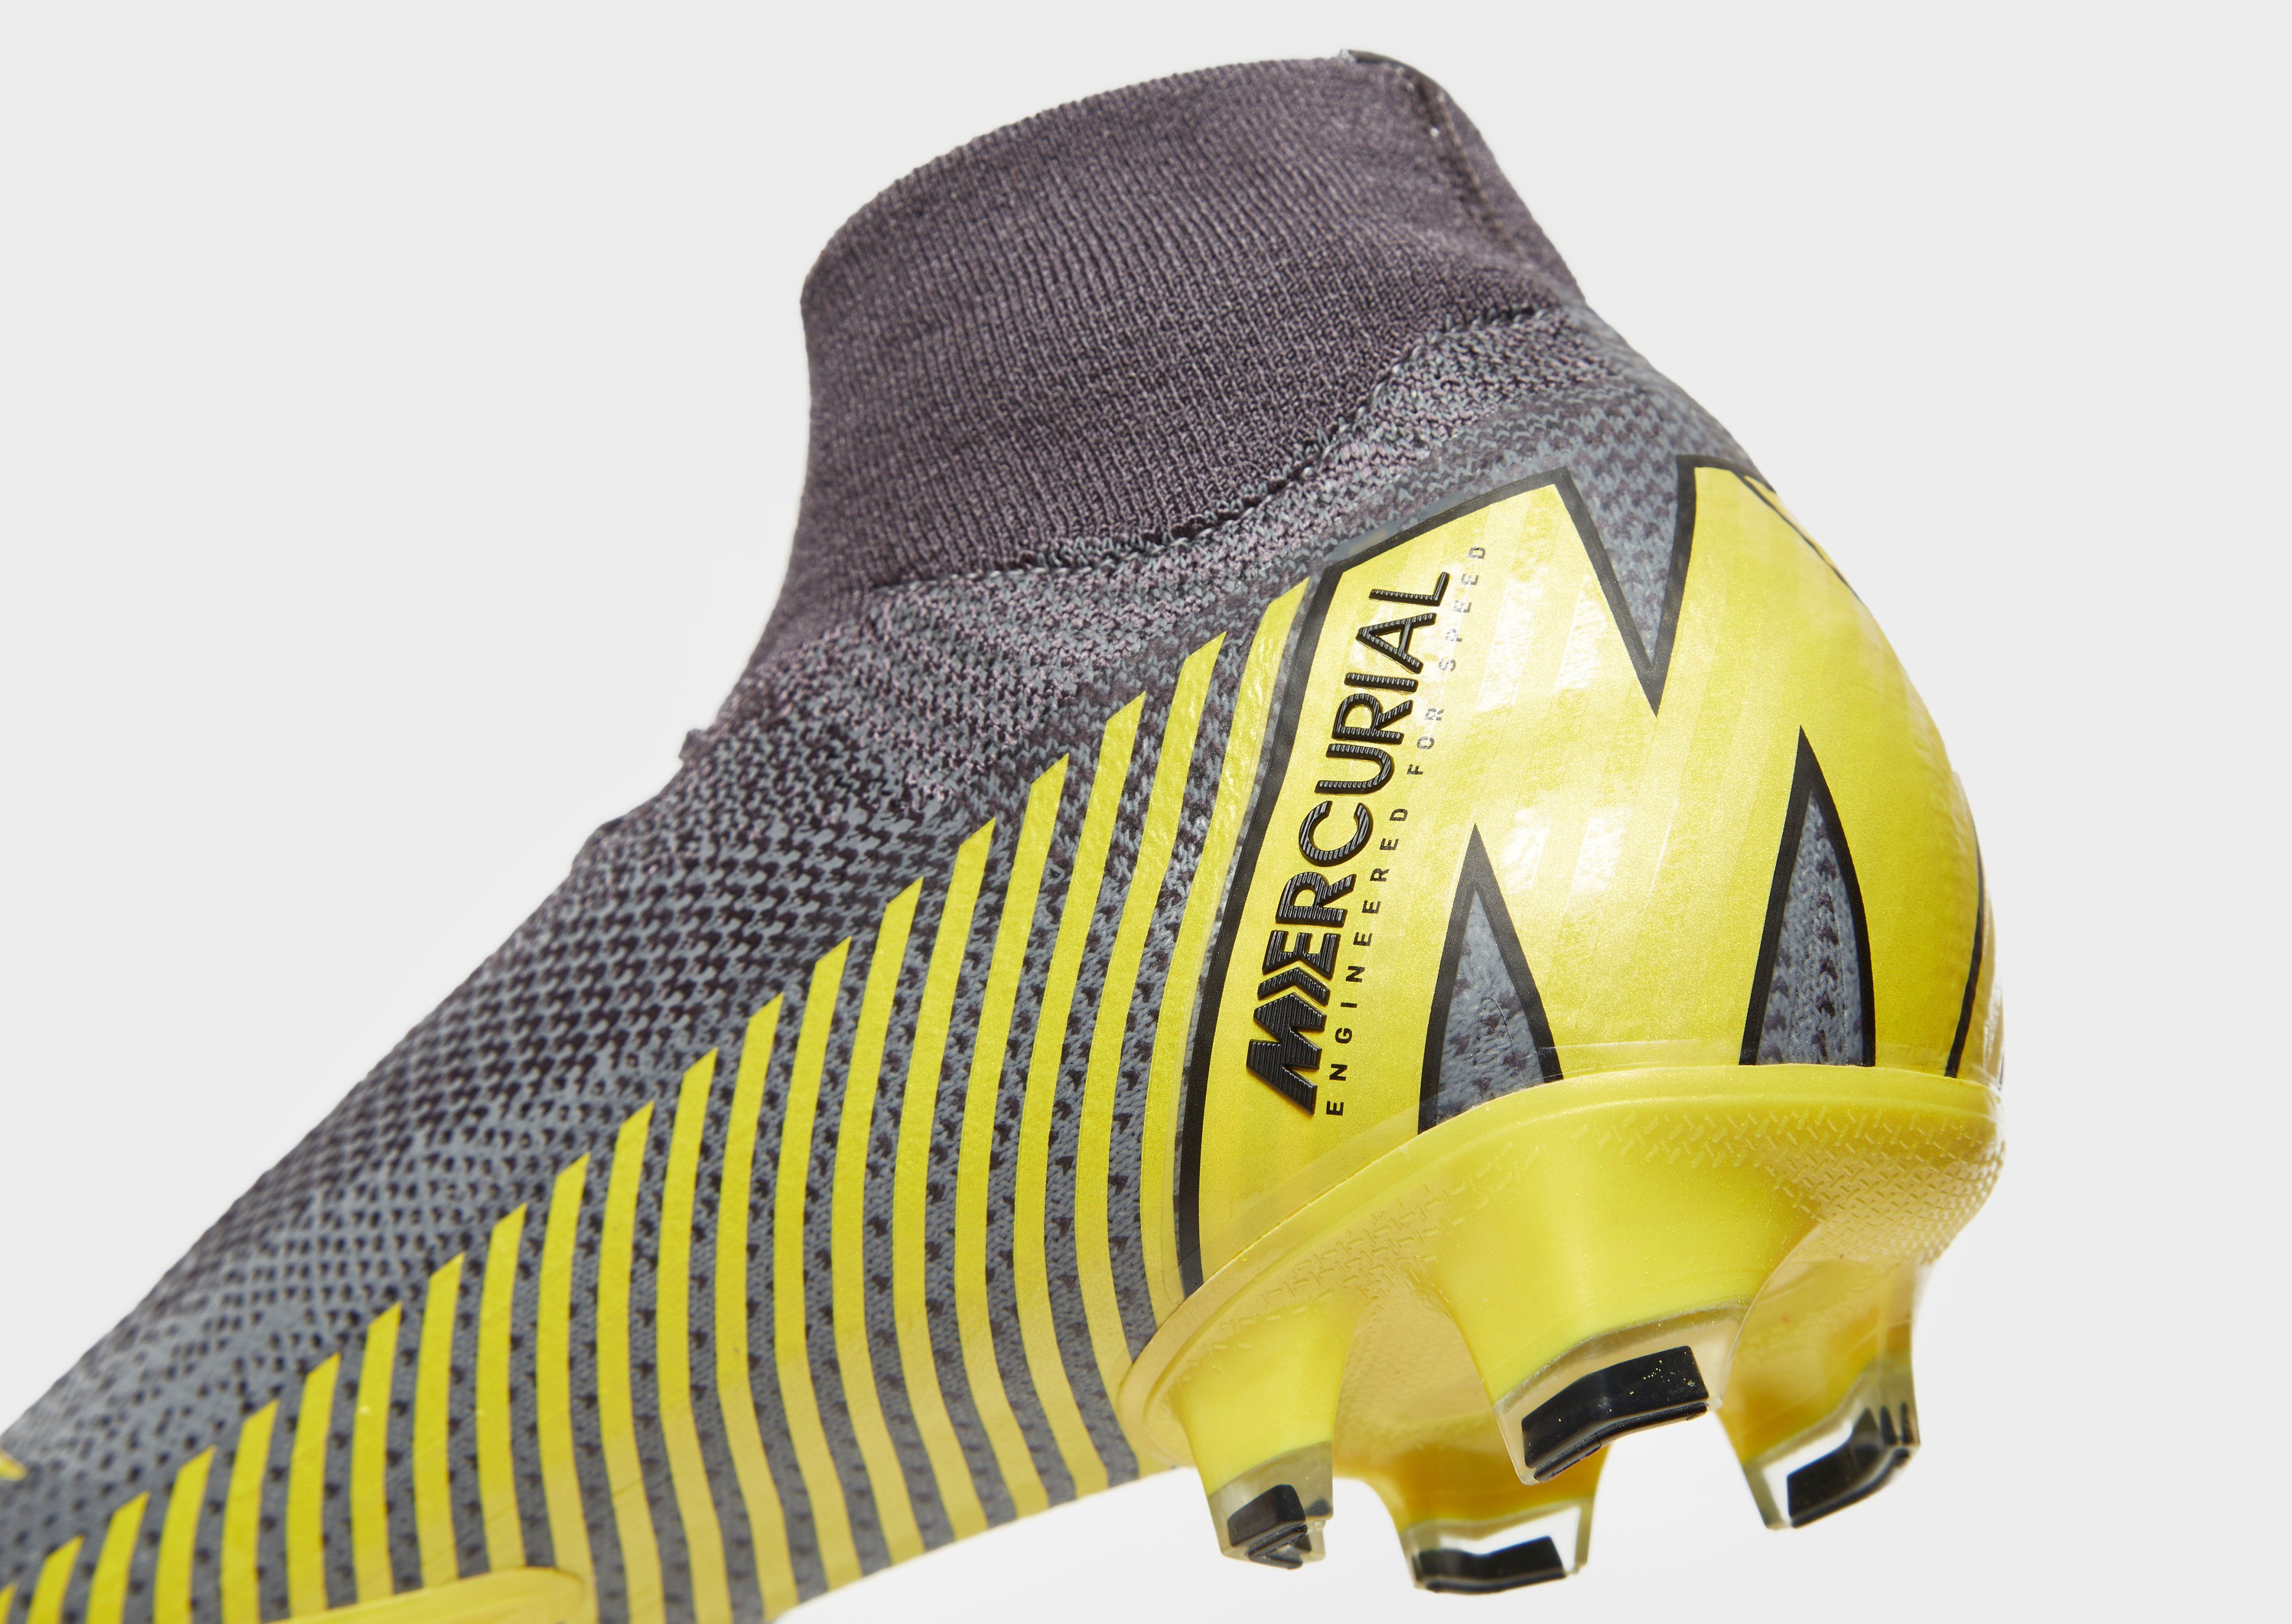 NIKE Nike Superfly 6 Elite FG Firm-Ground Football Boot